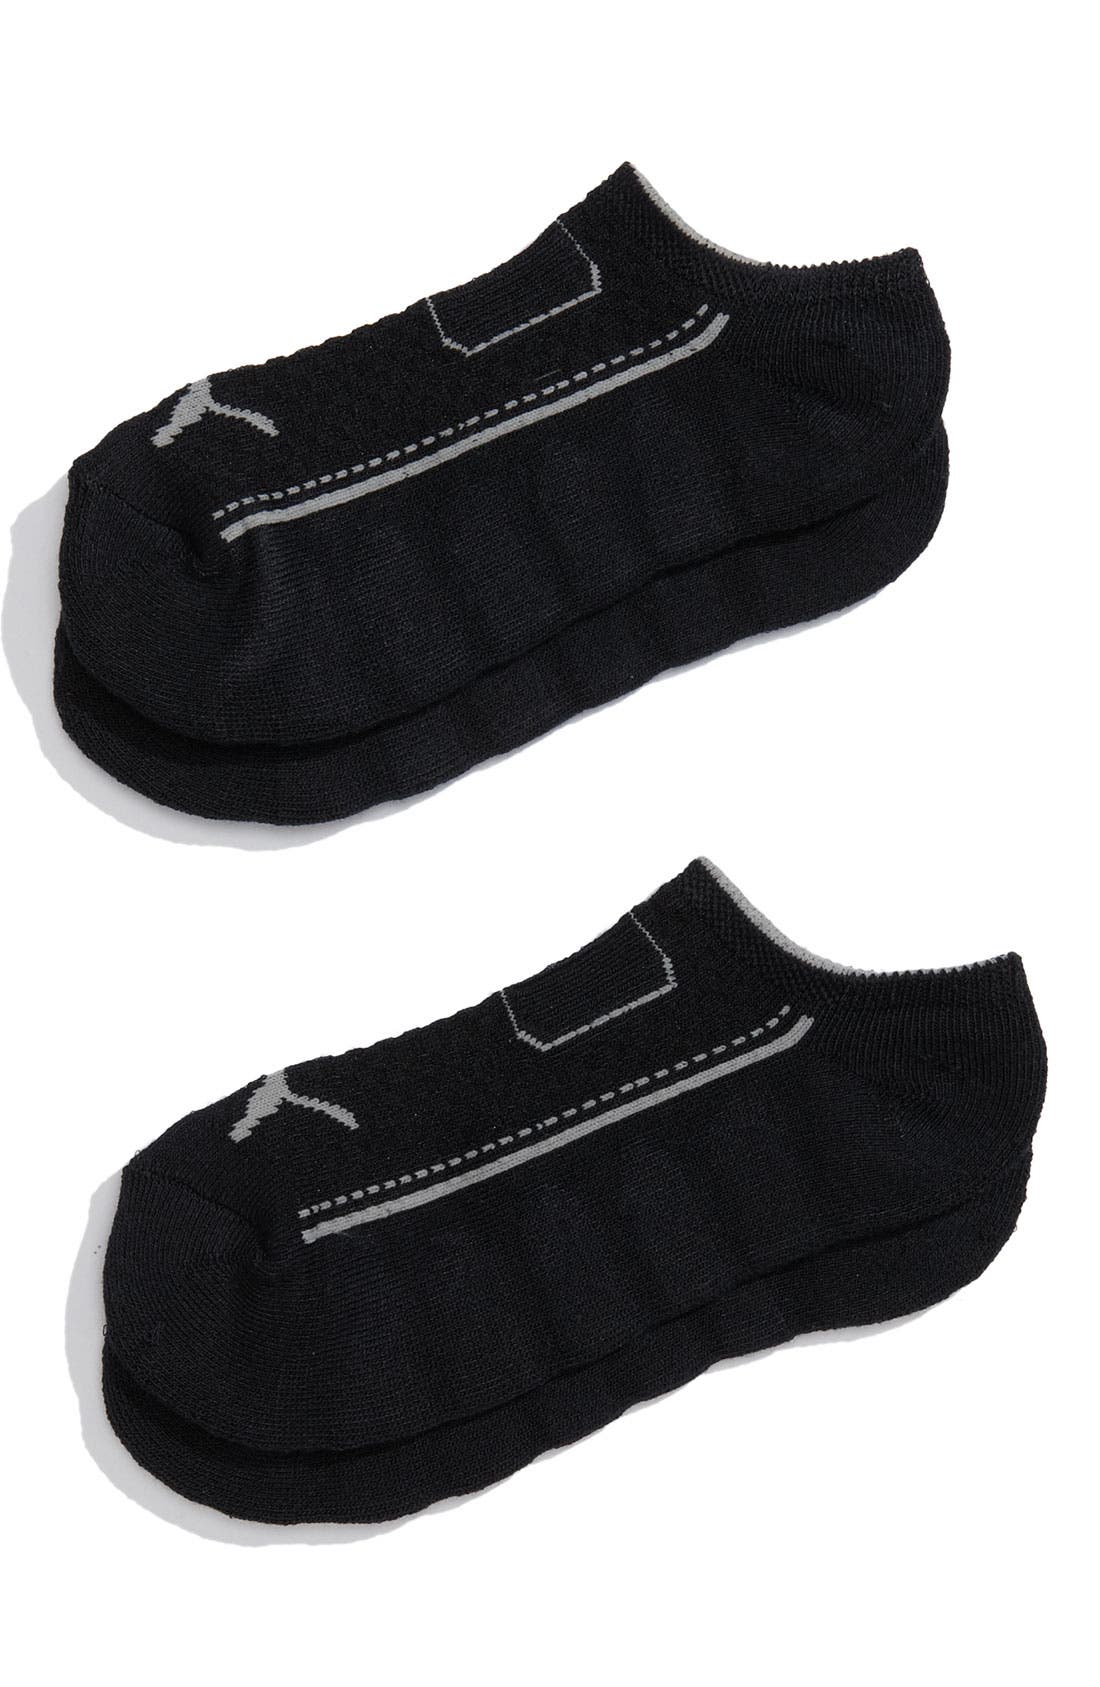 Main Image - PUMA No-Show Running Socks (2-Pack) (Women)